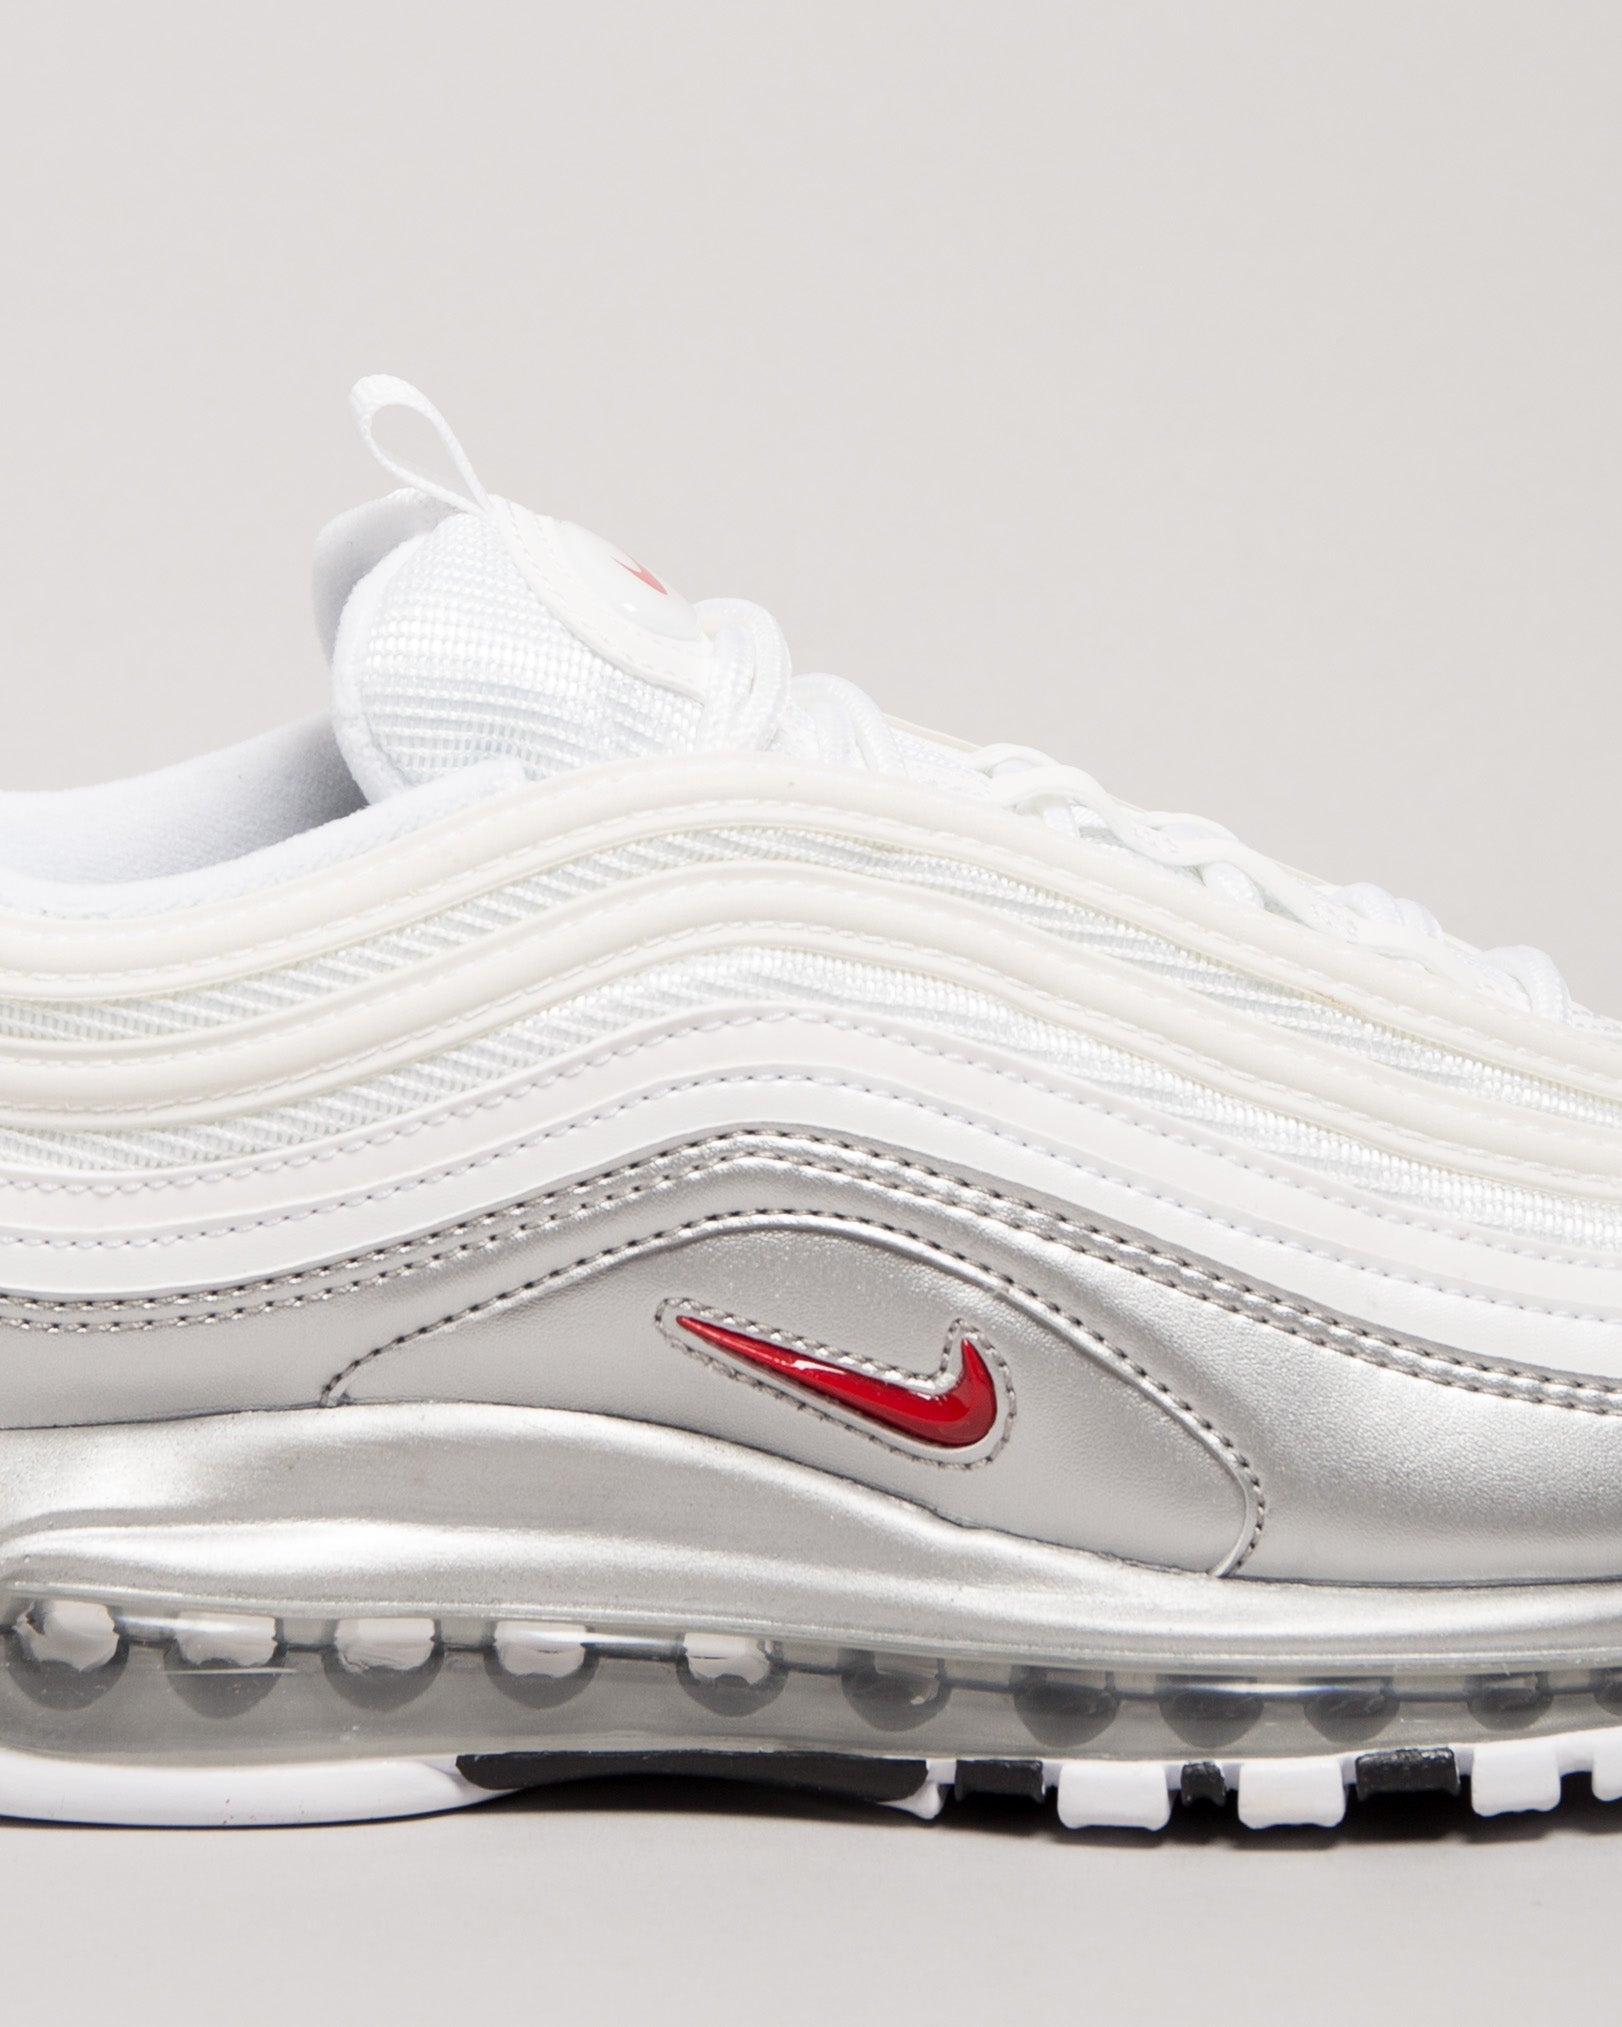 Air Max 97 QS White/Varsity Red/Metallic Silver